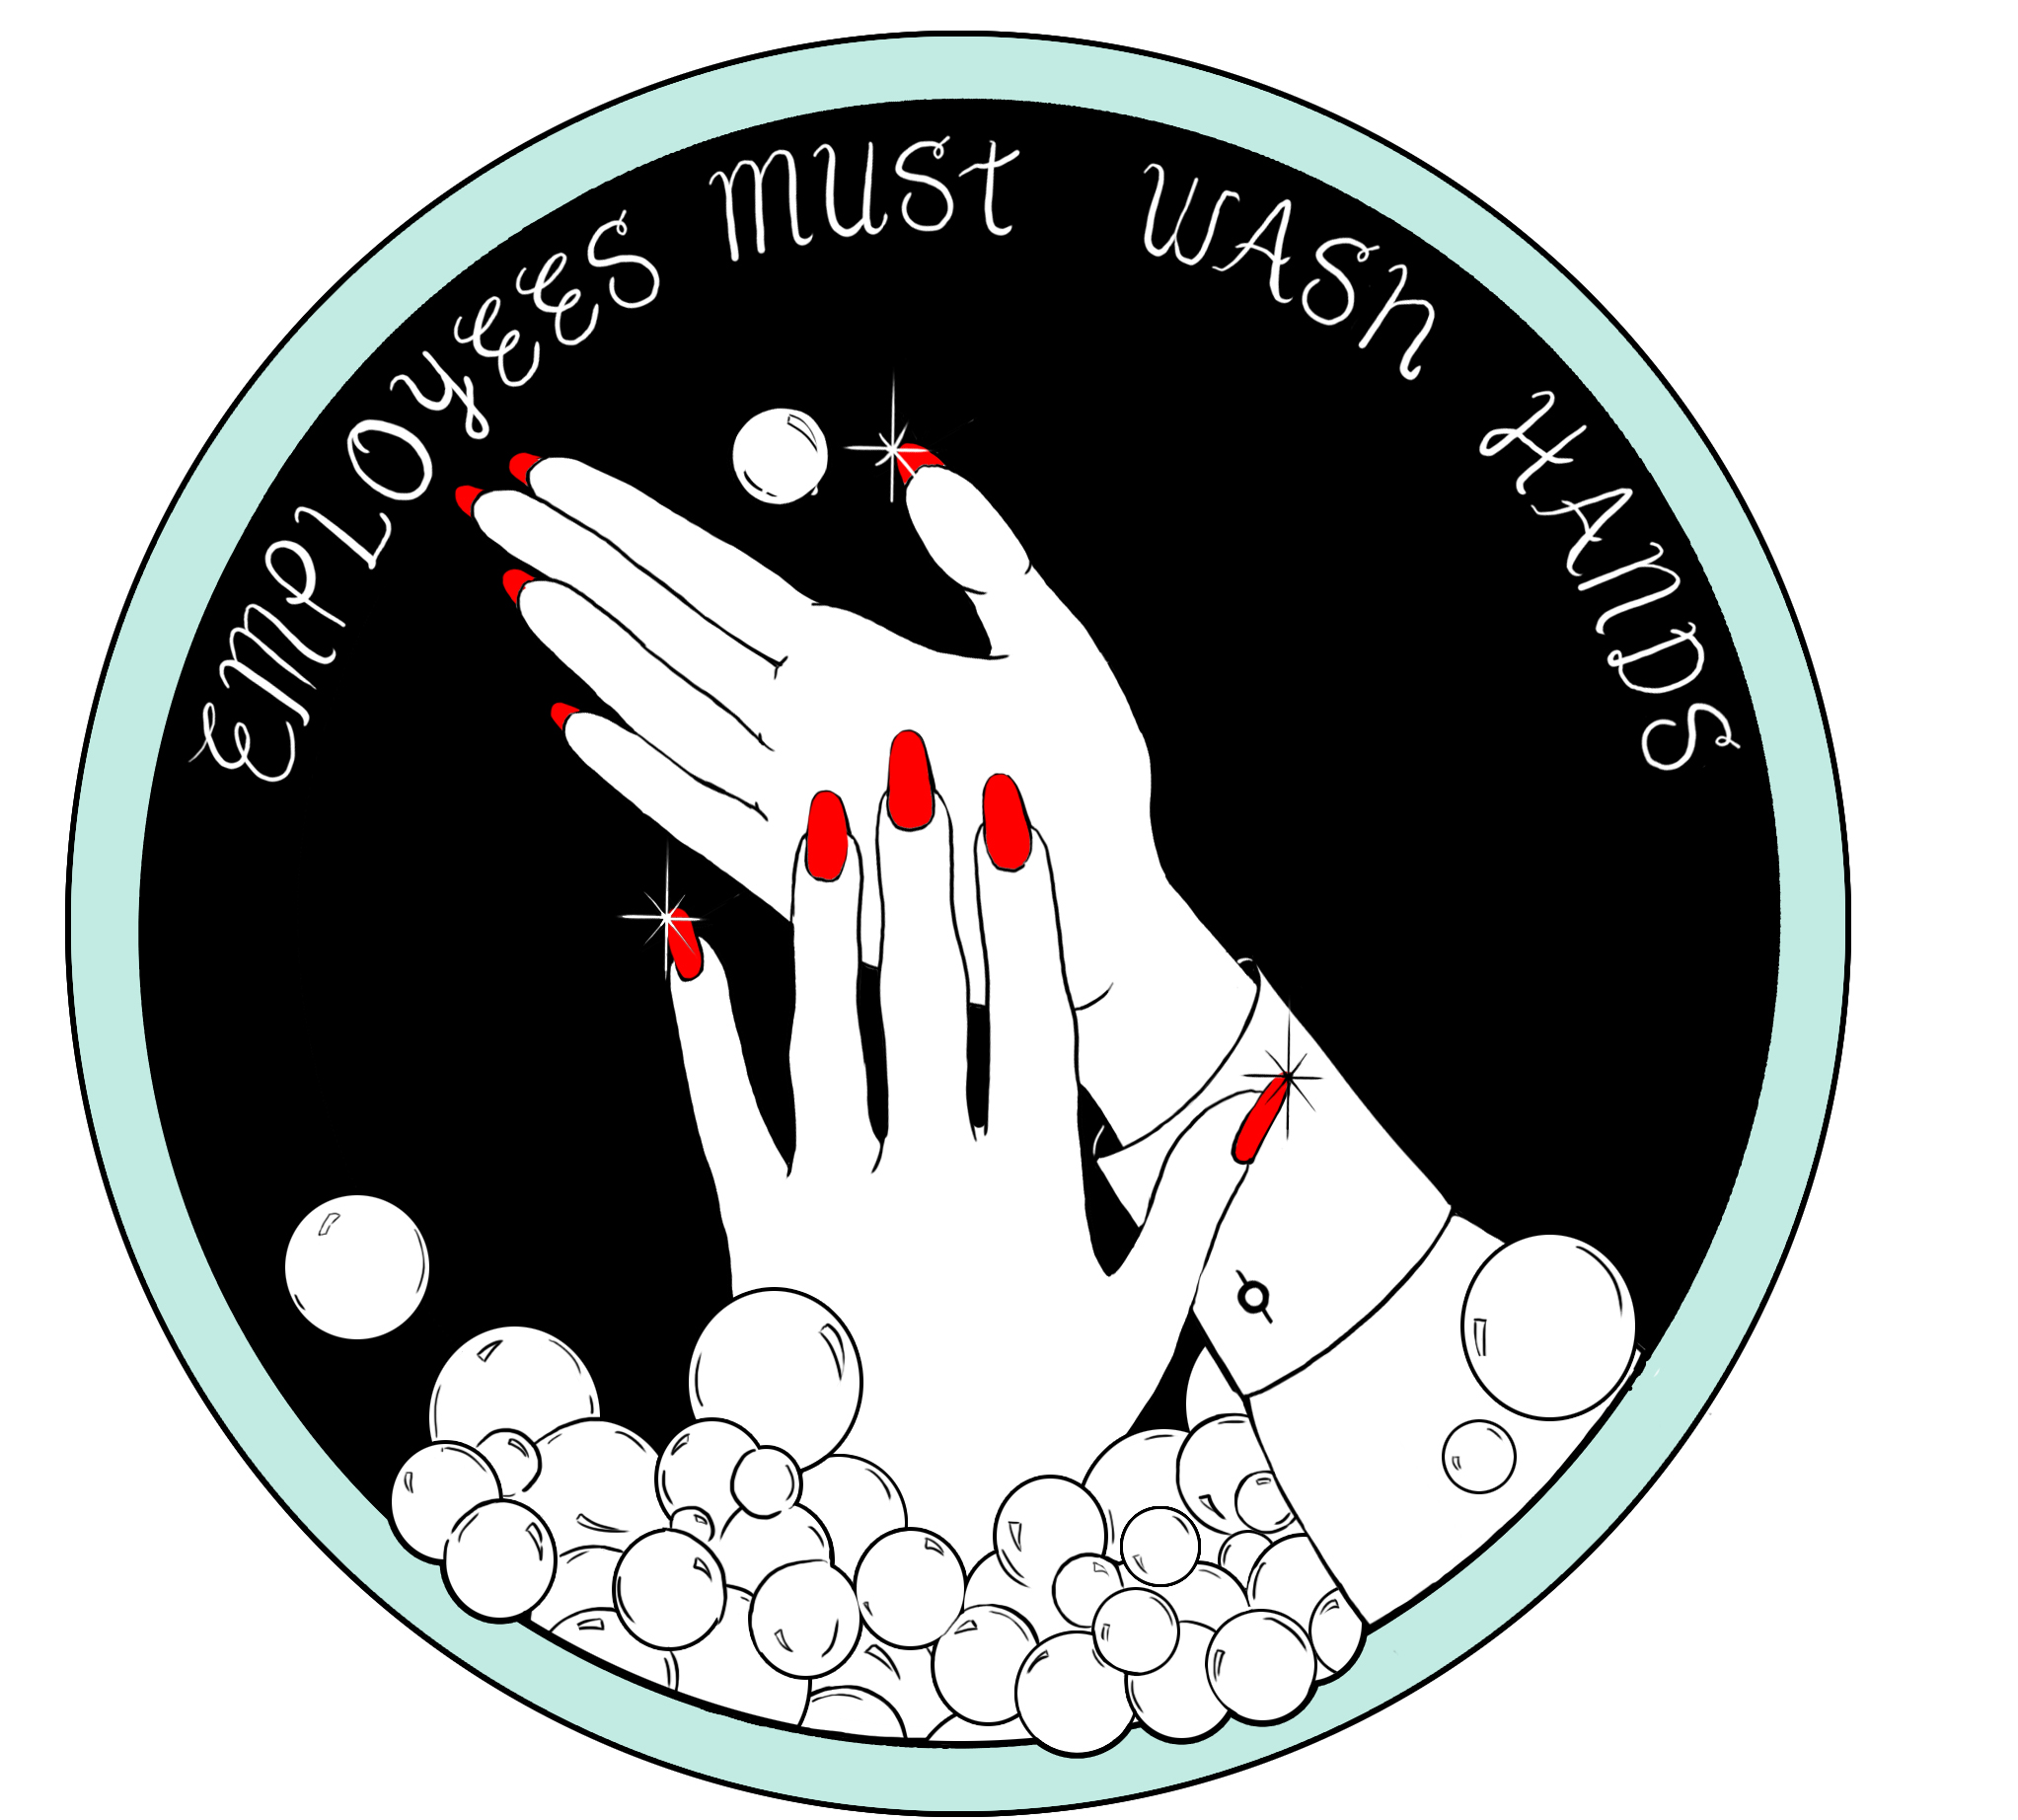 Employees Must Wash Hands Sign.jpg